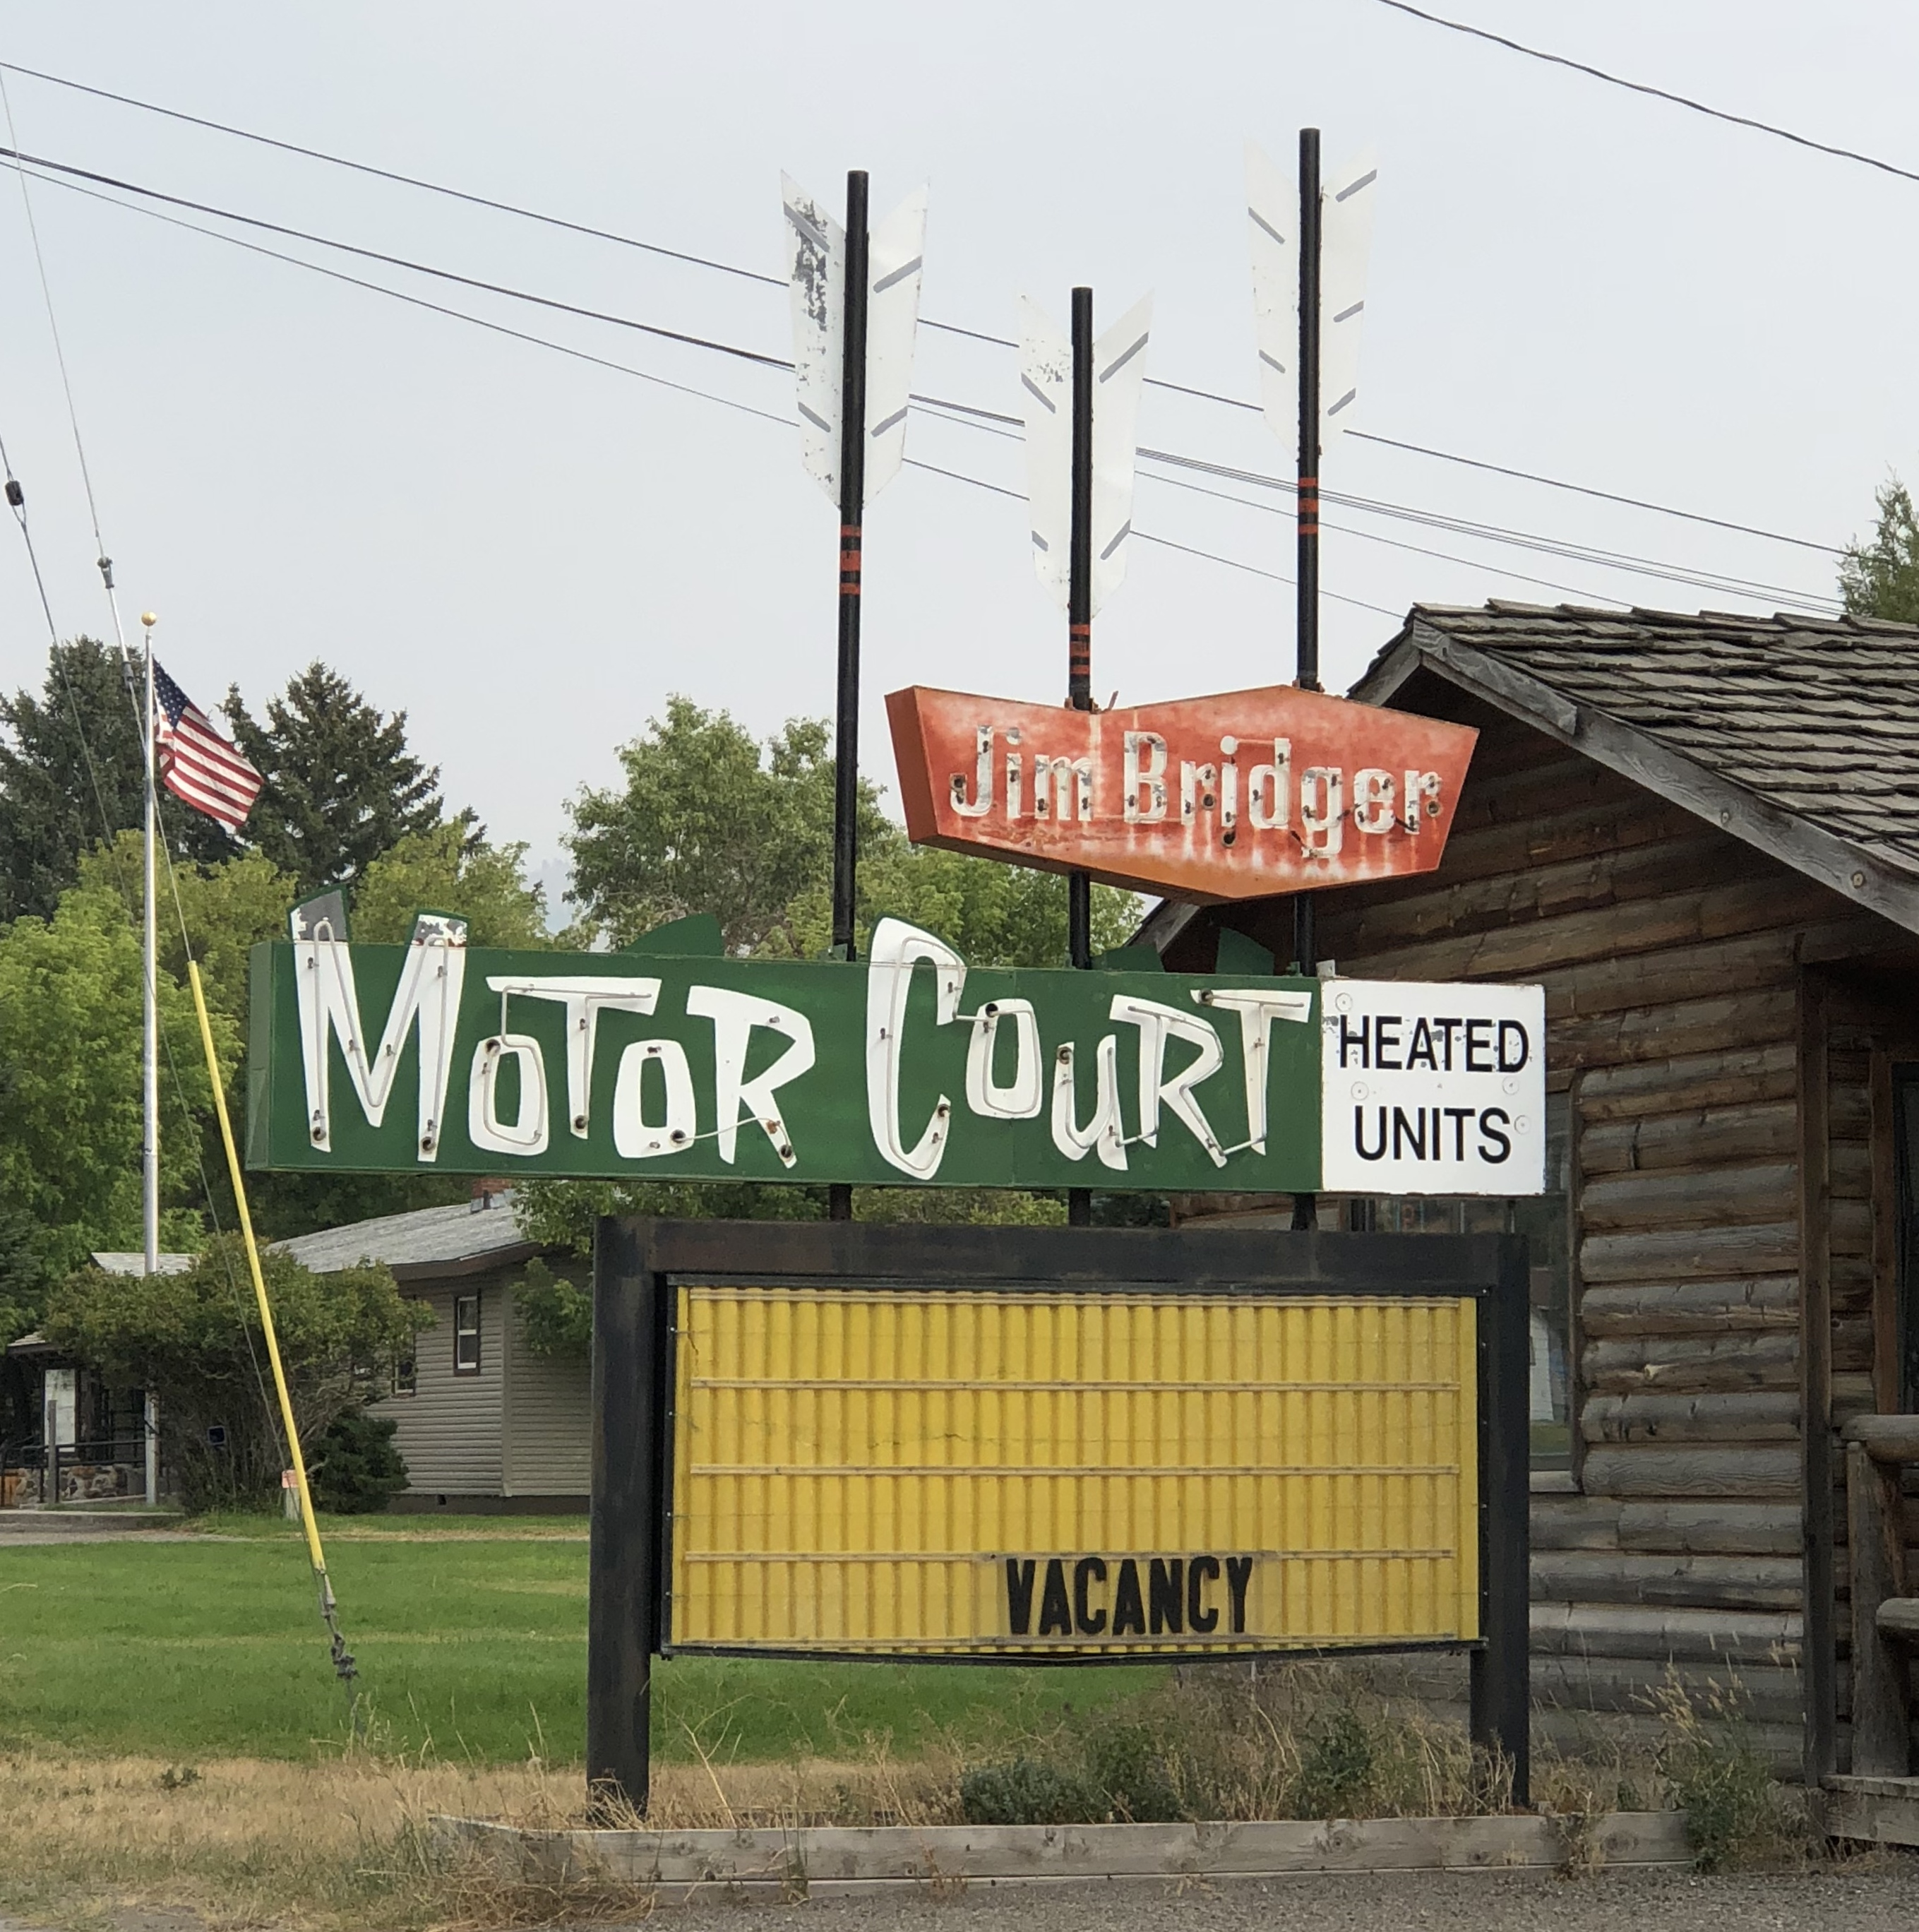 Jim Bridger Motor Court - 901 Scott Street West, Gardiner, Montana U.S.A. - August 20, 2018